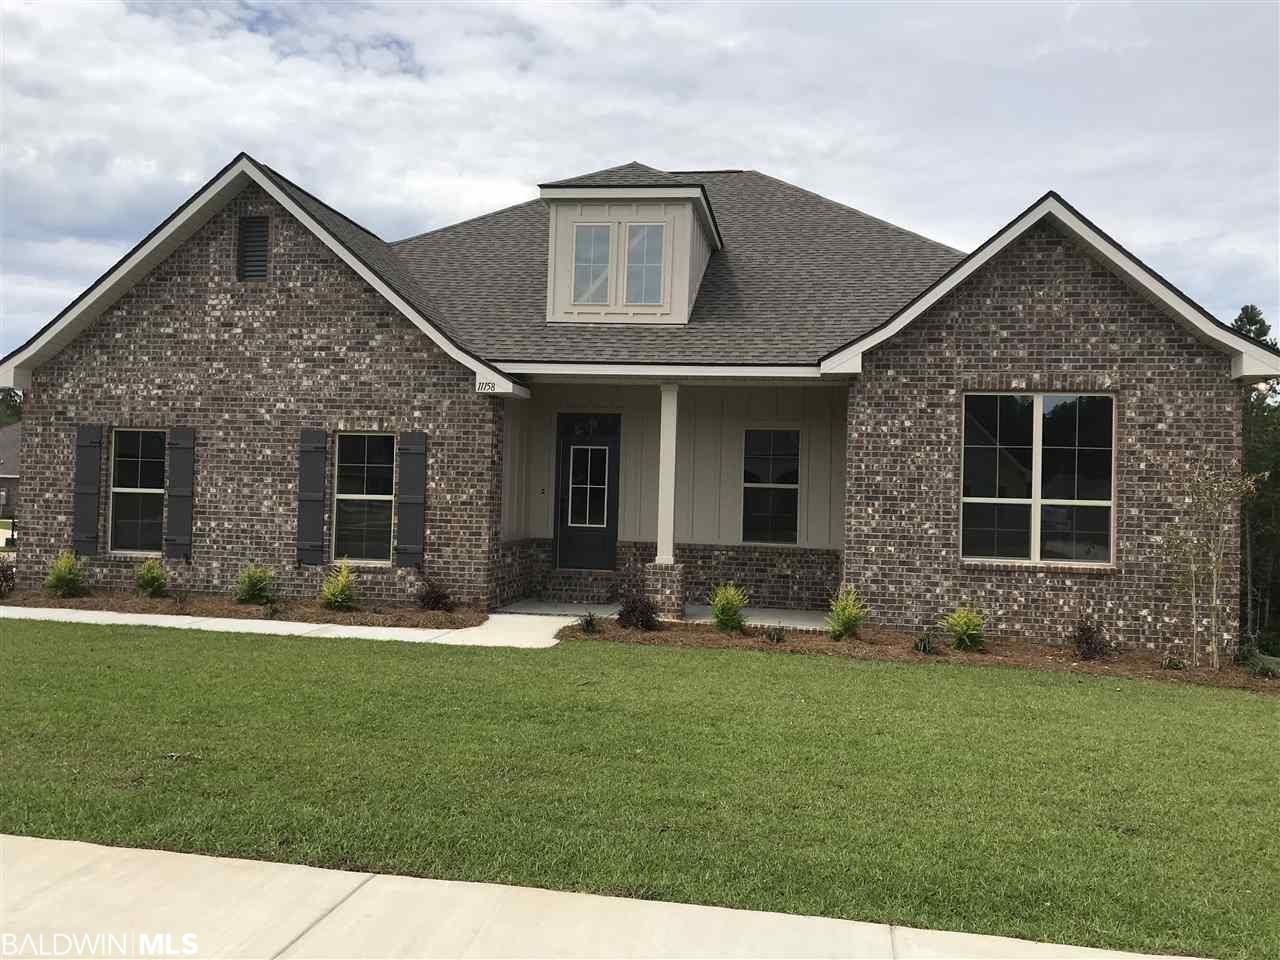 11158 Thistledown Loop, Spanish Fort, AL 36527